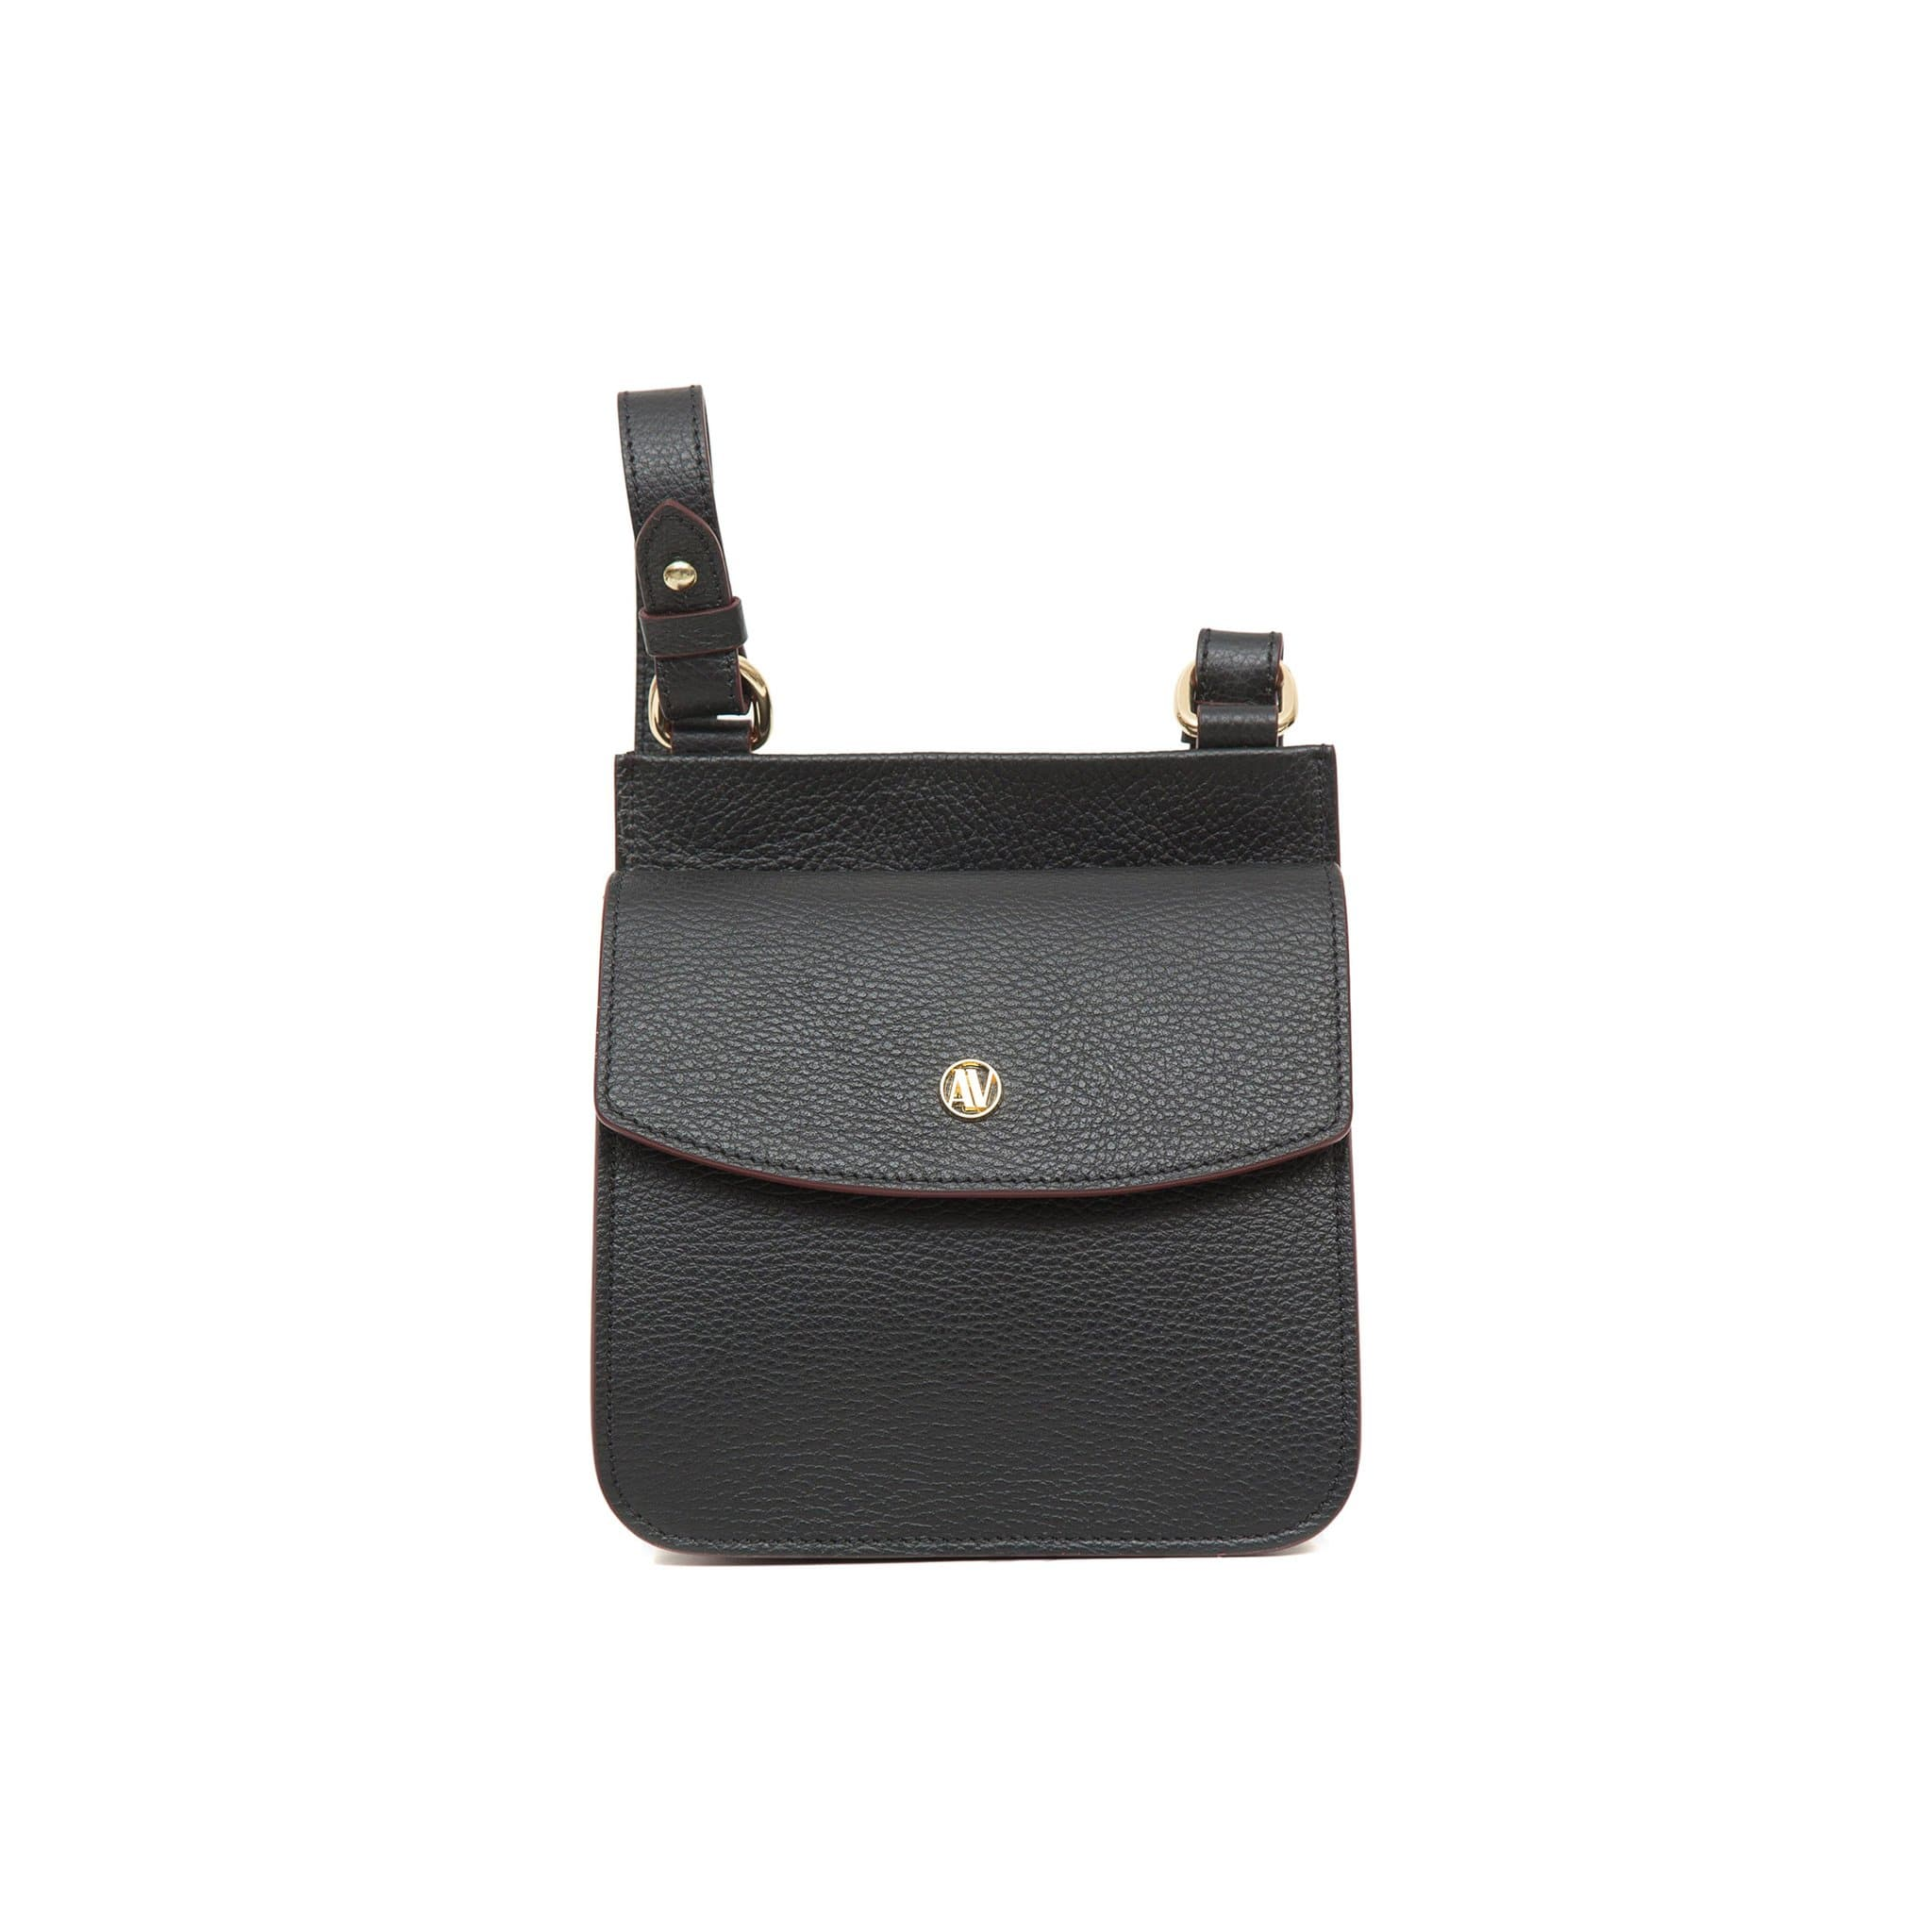 Lilia mini Evolution Handbag - Multi Black